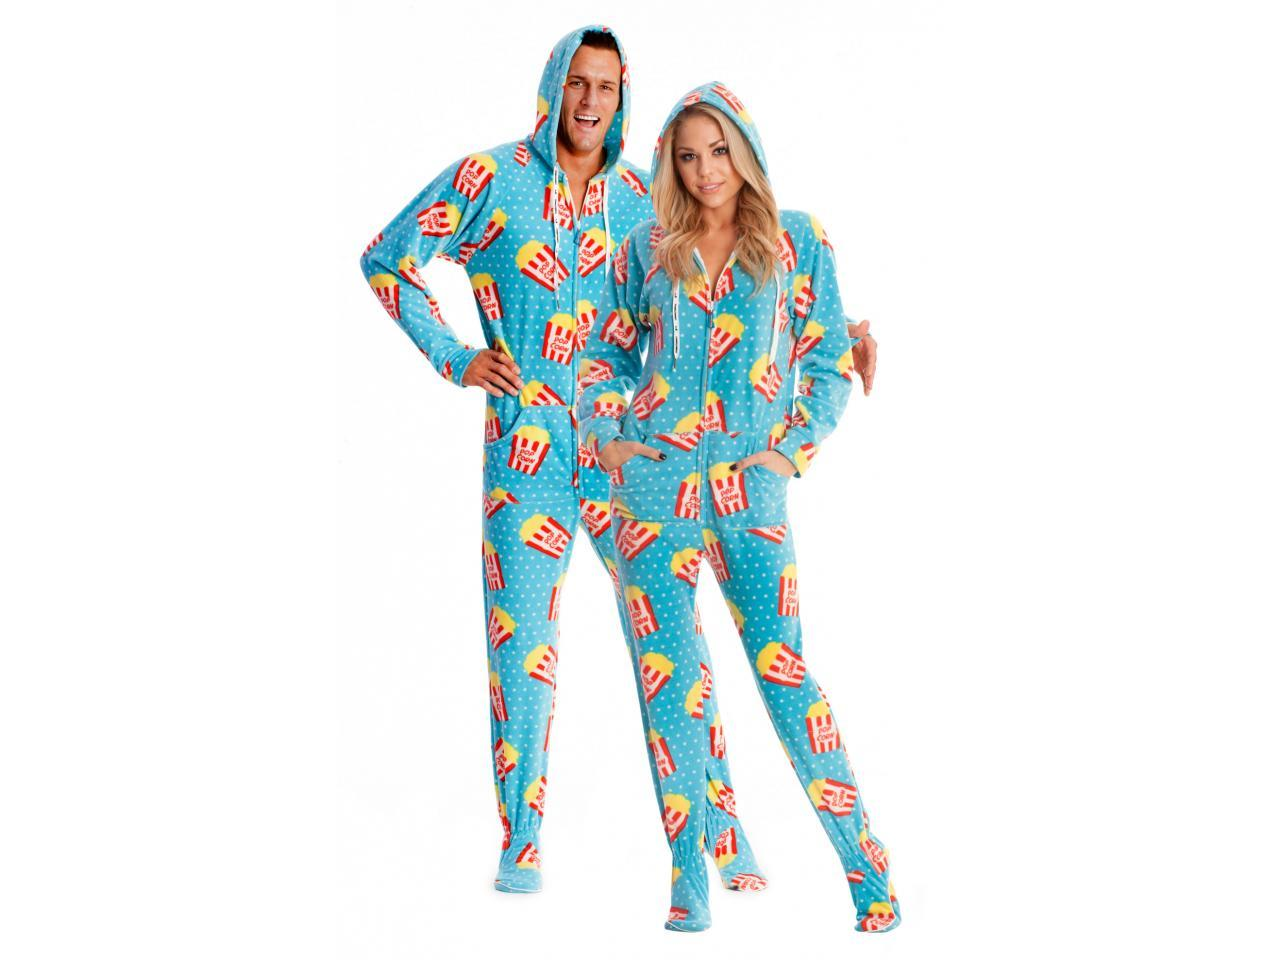 Movie Night Popcorn Printed Footed Adult From Jumpinjammerz